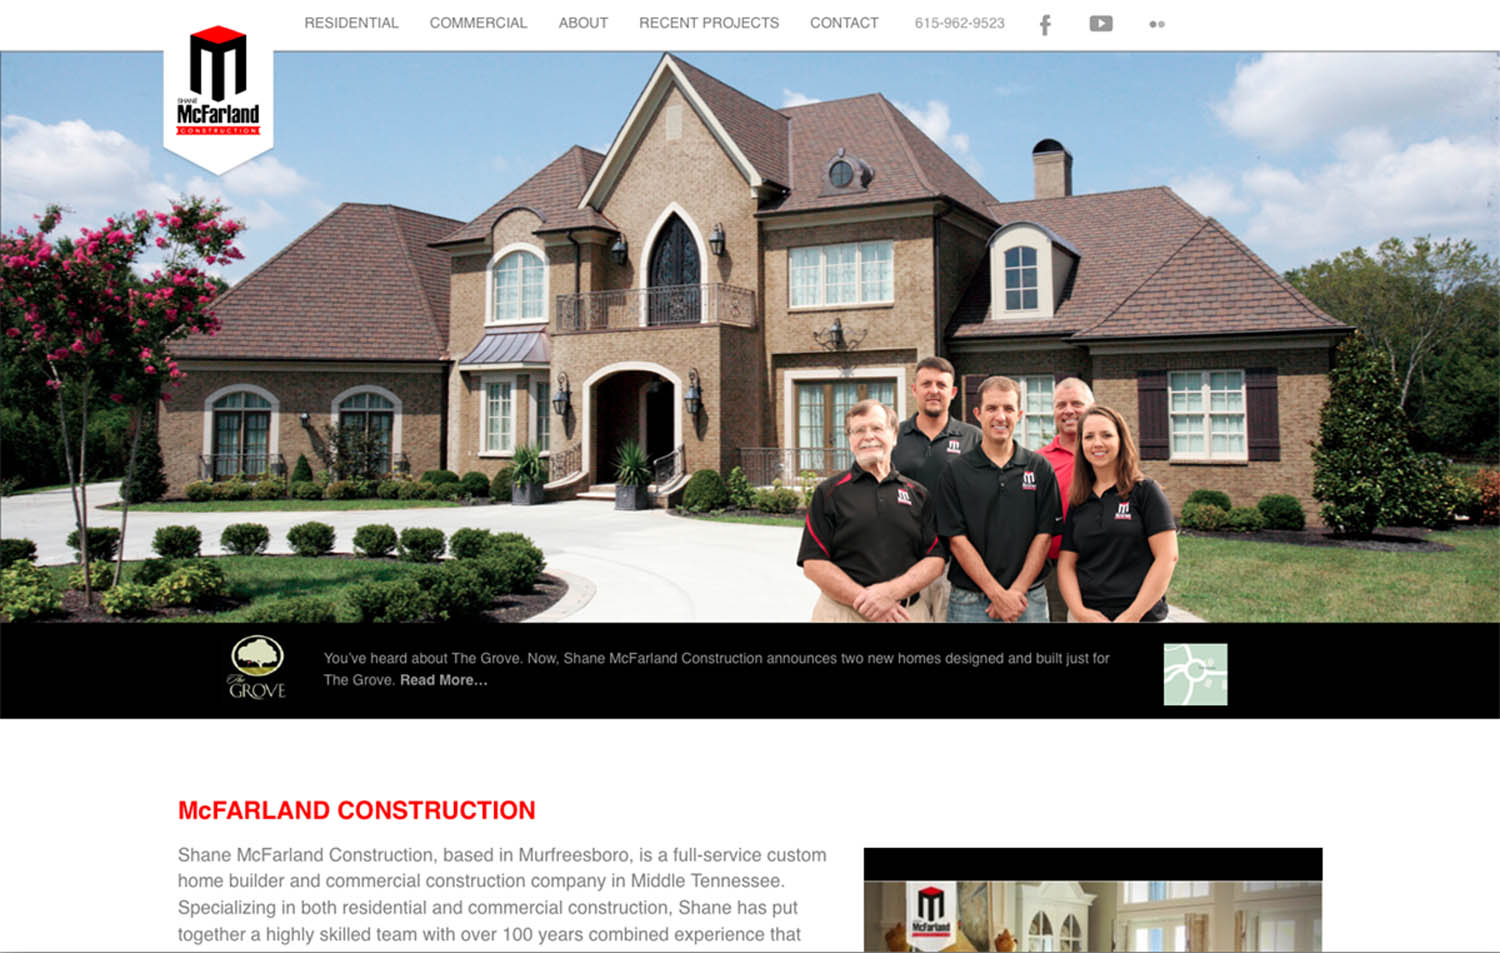 Shane McFarland Construction. Murfreesboro, TN - Website Image